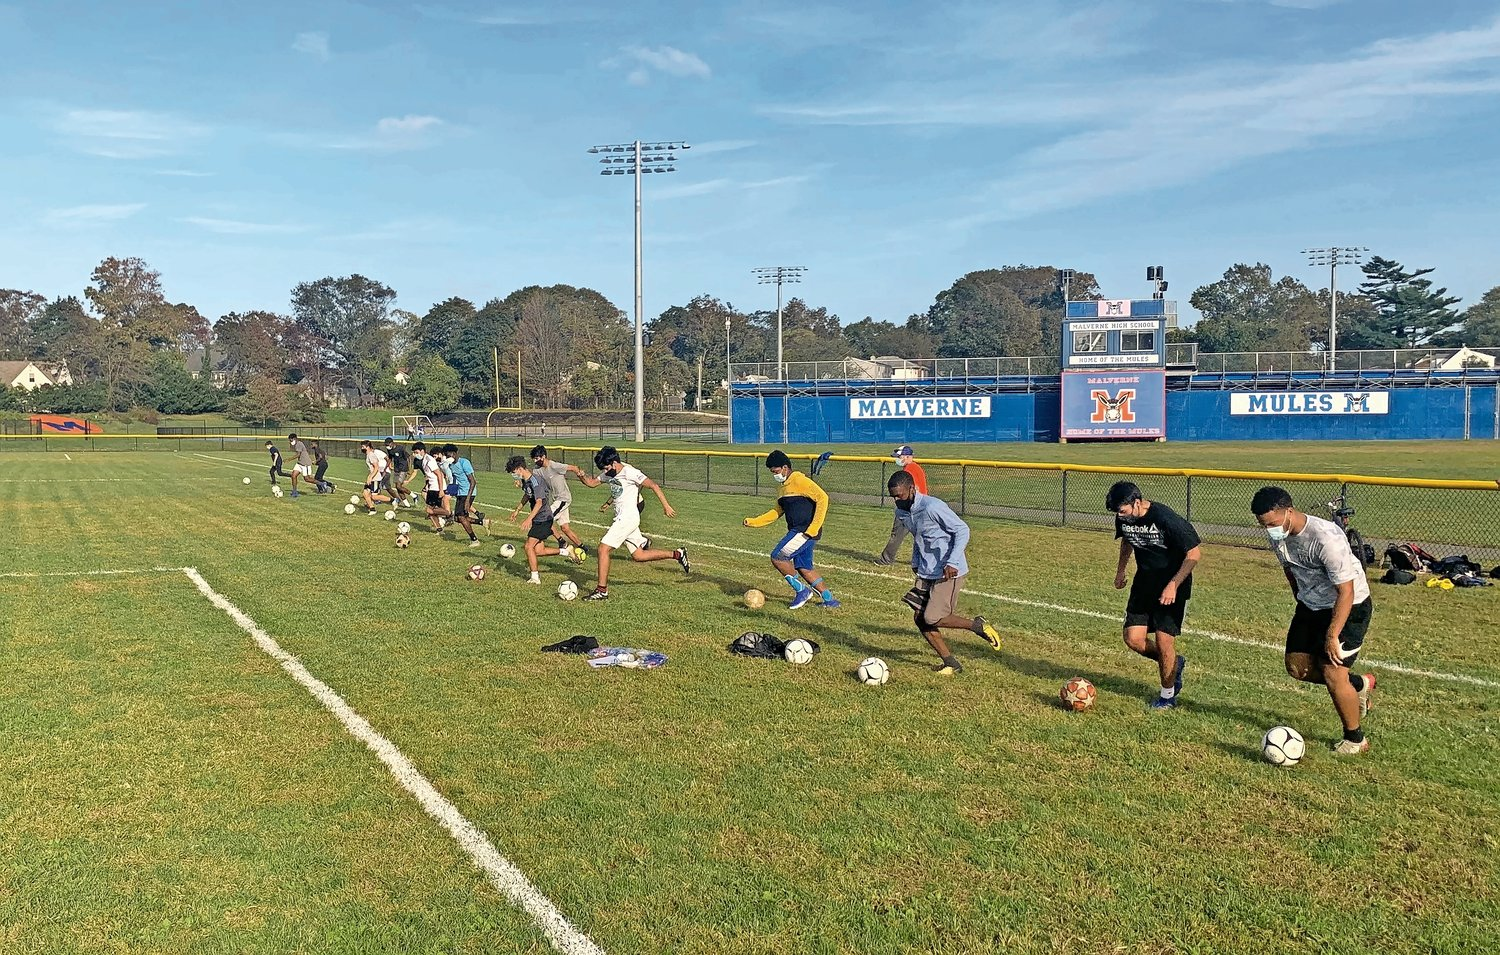 Malverne High School kicked off its outdoor intramural program on Oct. 19.